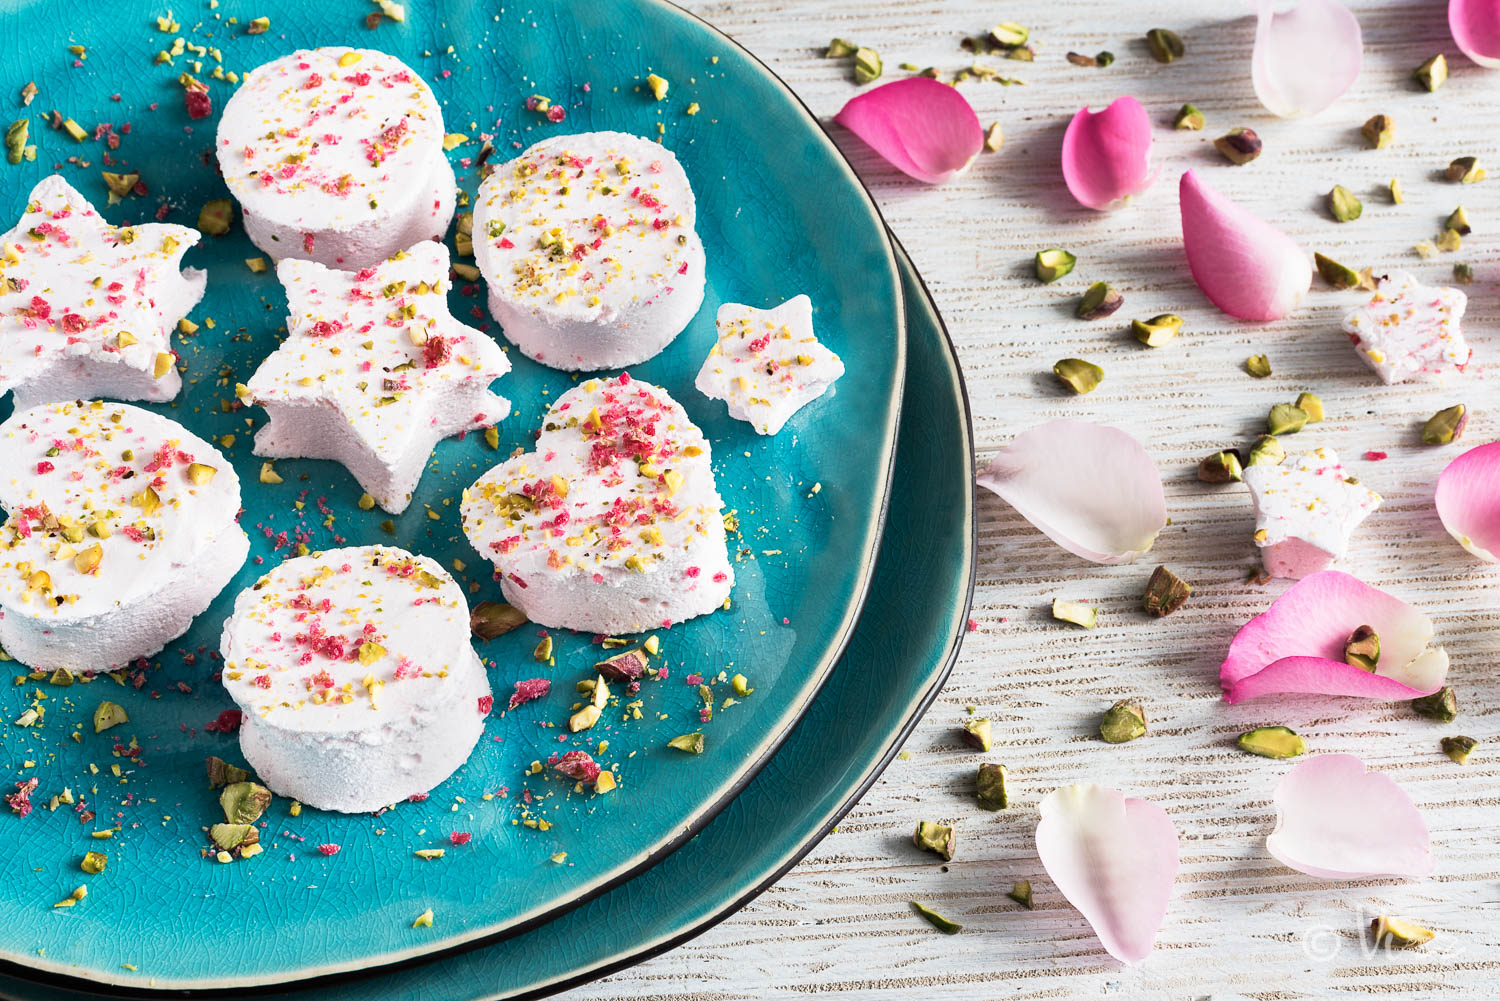 Joy's Artisan Foods Rose Water Marshmallows